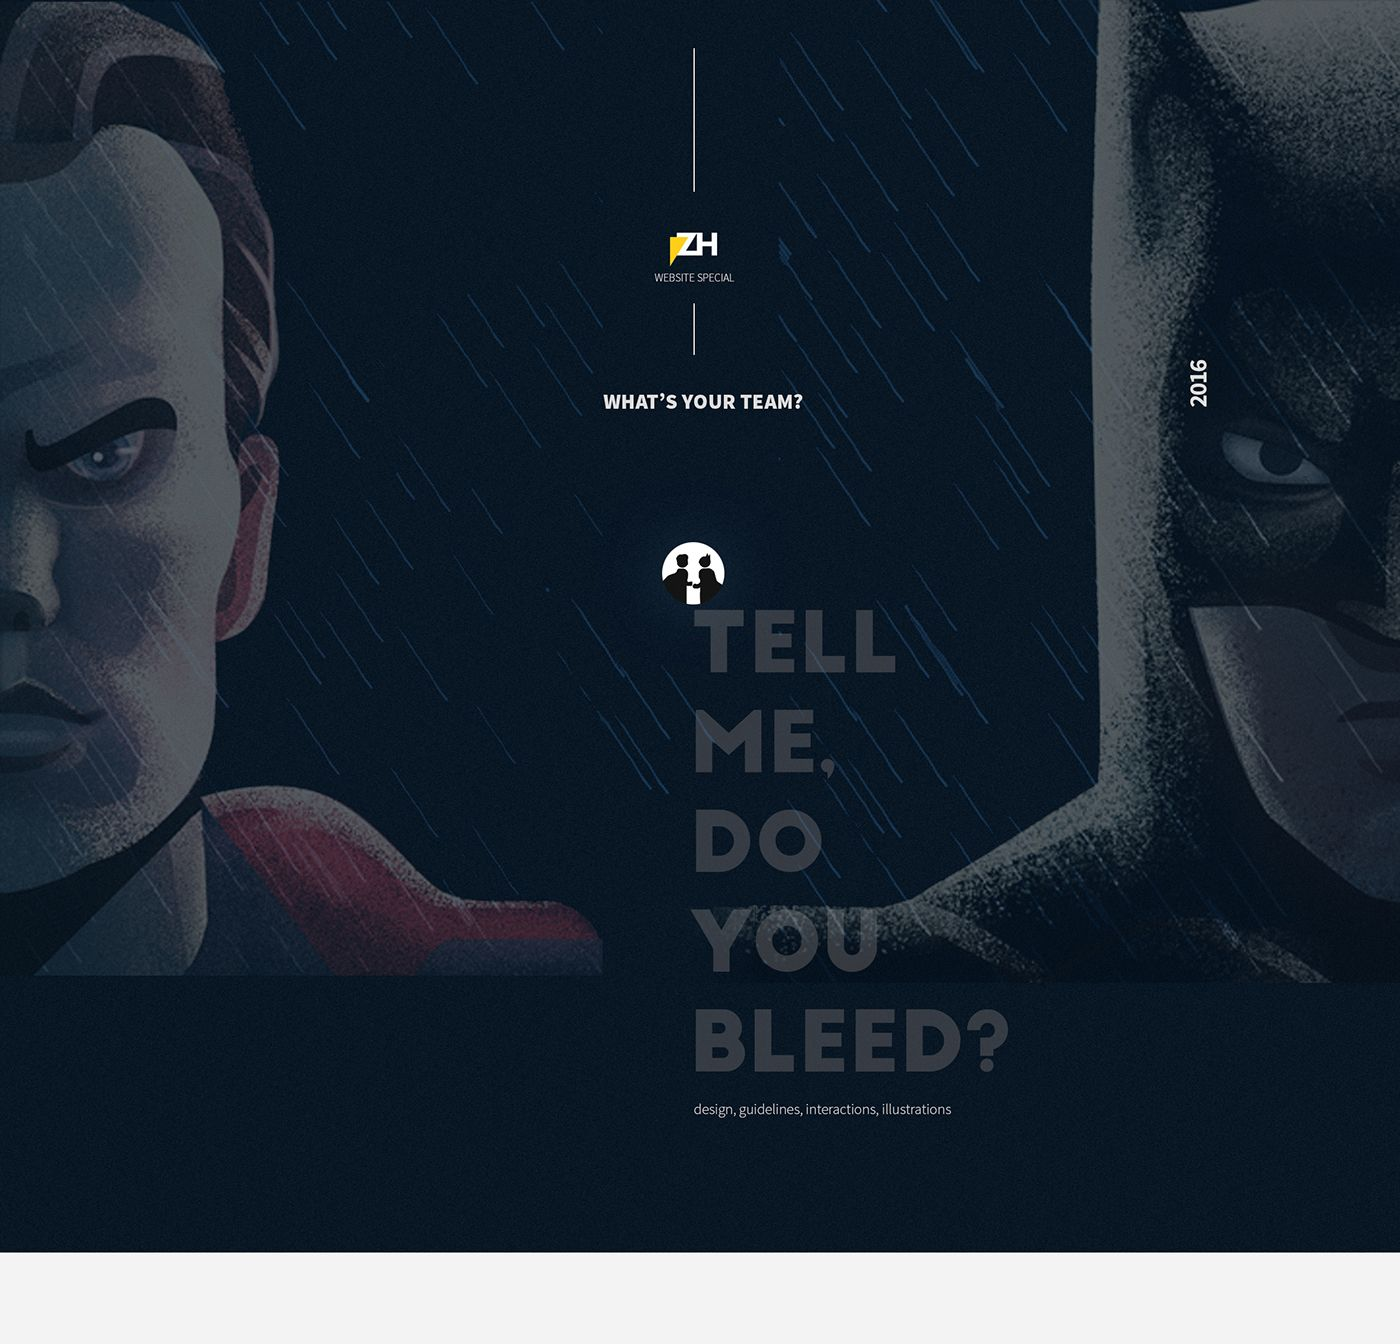 Batman v Superman ZH on Behance